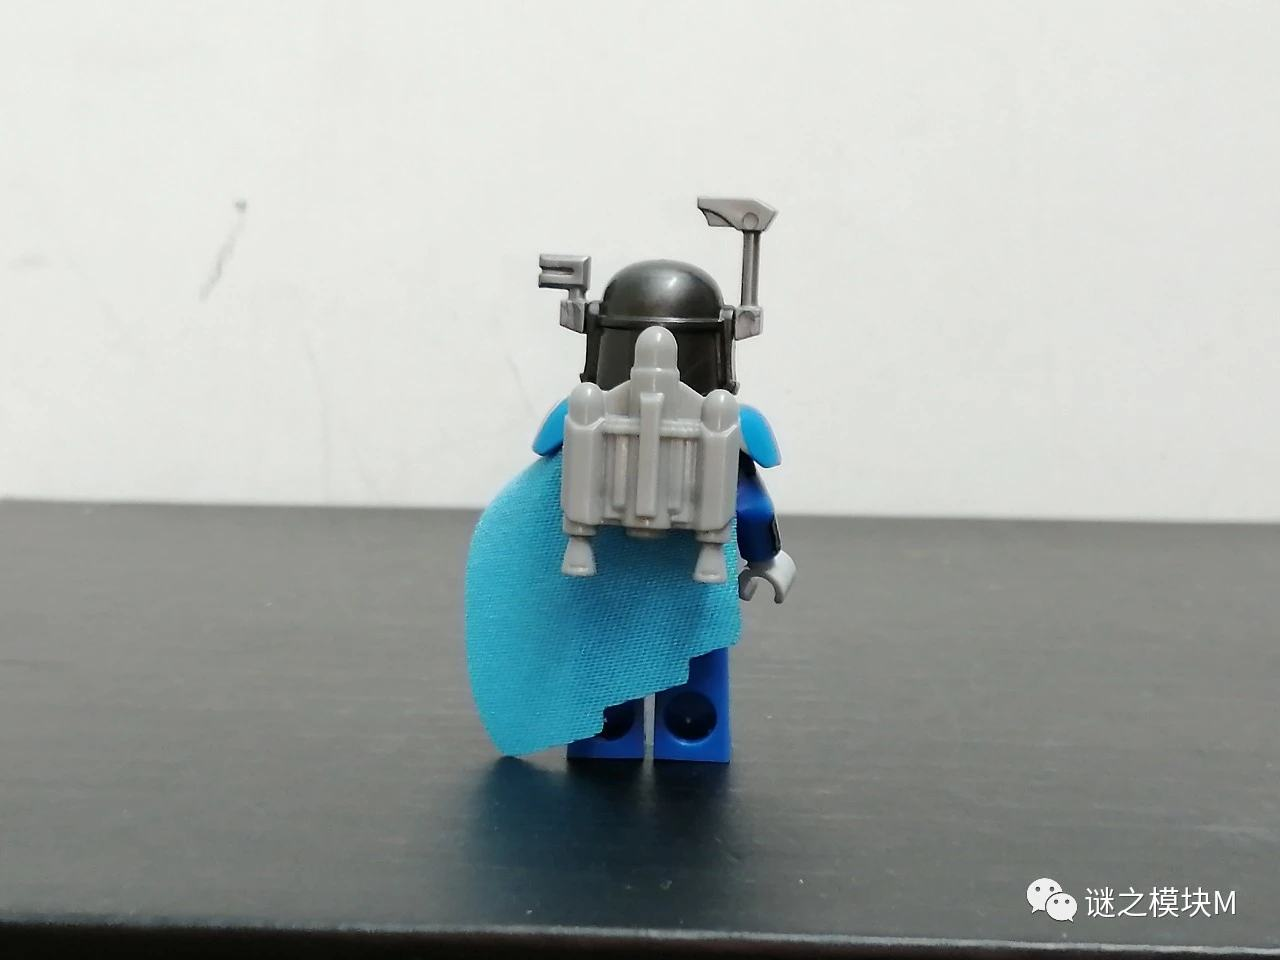 Reviews Of Koruit Kt1041 Star Wars Mandalorian Non Lego Minifigures Customize Minifigures Intelligence Tarre vizsla is said to be the first mandalorian ever inducted into the jedi order, back in the age of the old republic. reviews of koruit kt1041 star wars